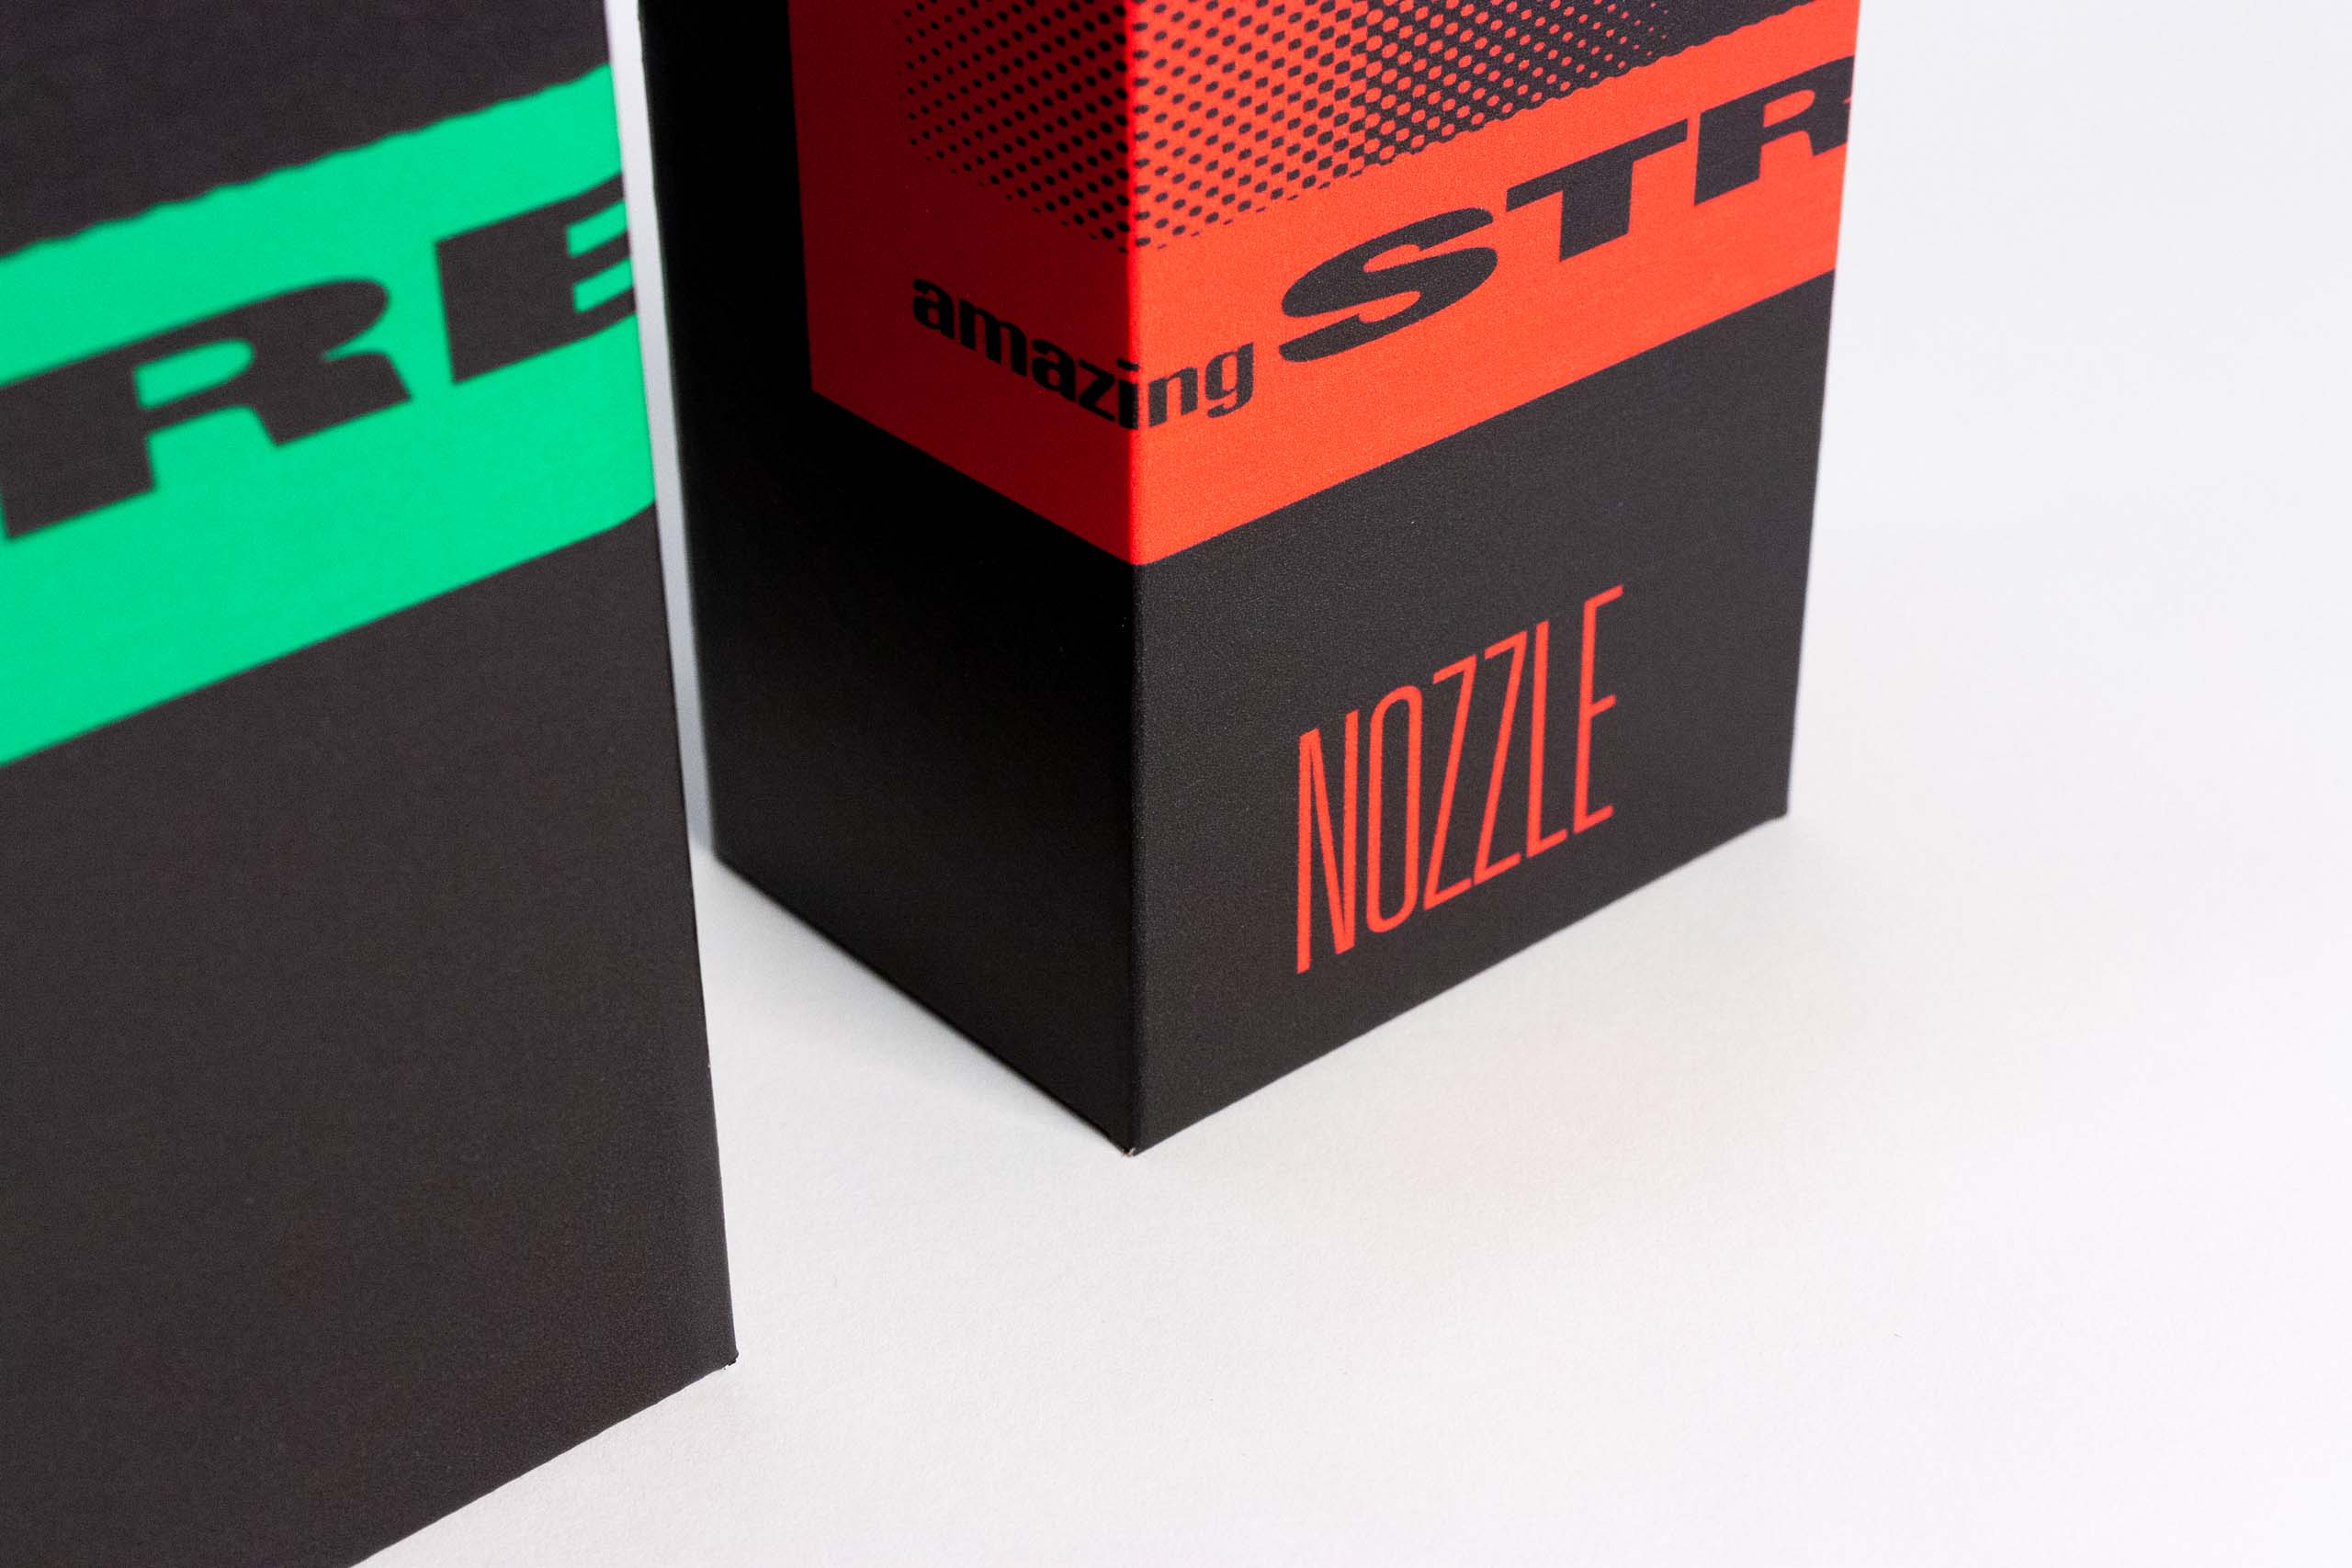 Details of The Nozzle typography below the brand logo encompassing most of the packaging — by Yagnyuk.